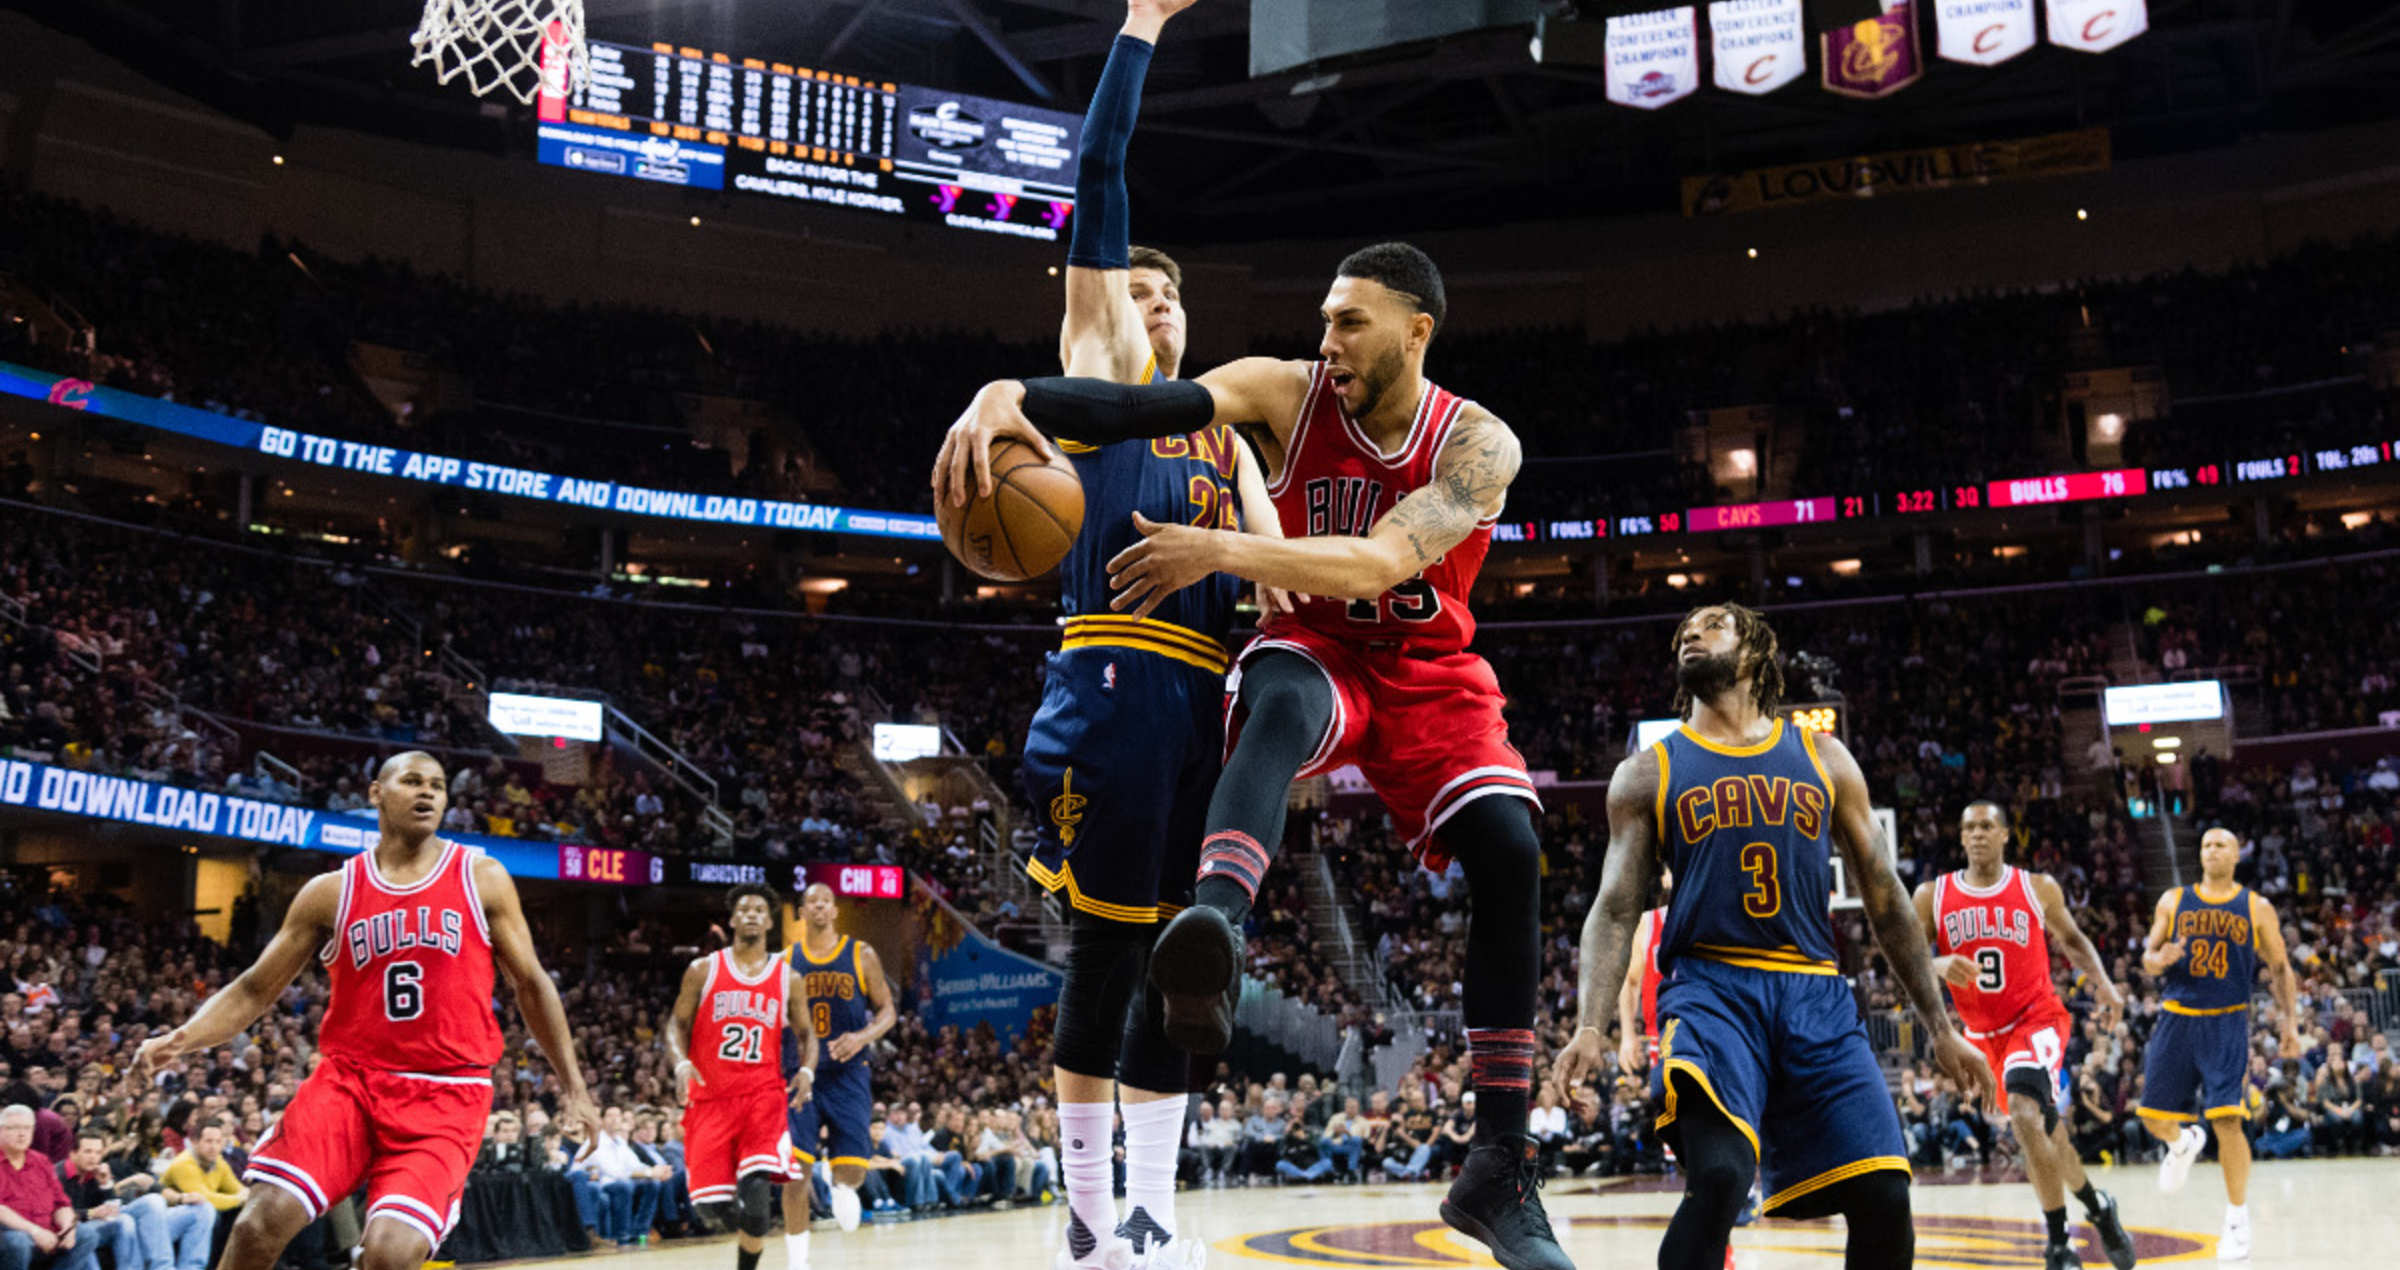 Denzel Valentine #45 of the Chicago Bulls passes around Kyle Korver #26 of the Cleveland Cavaliers during the second half at Quicken Loans Arena on February 25, 2017 in Cleveland, Ohio. The Bulls defeated the Cavaliers 117-99.